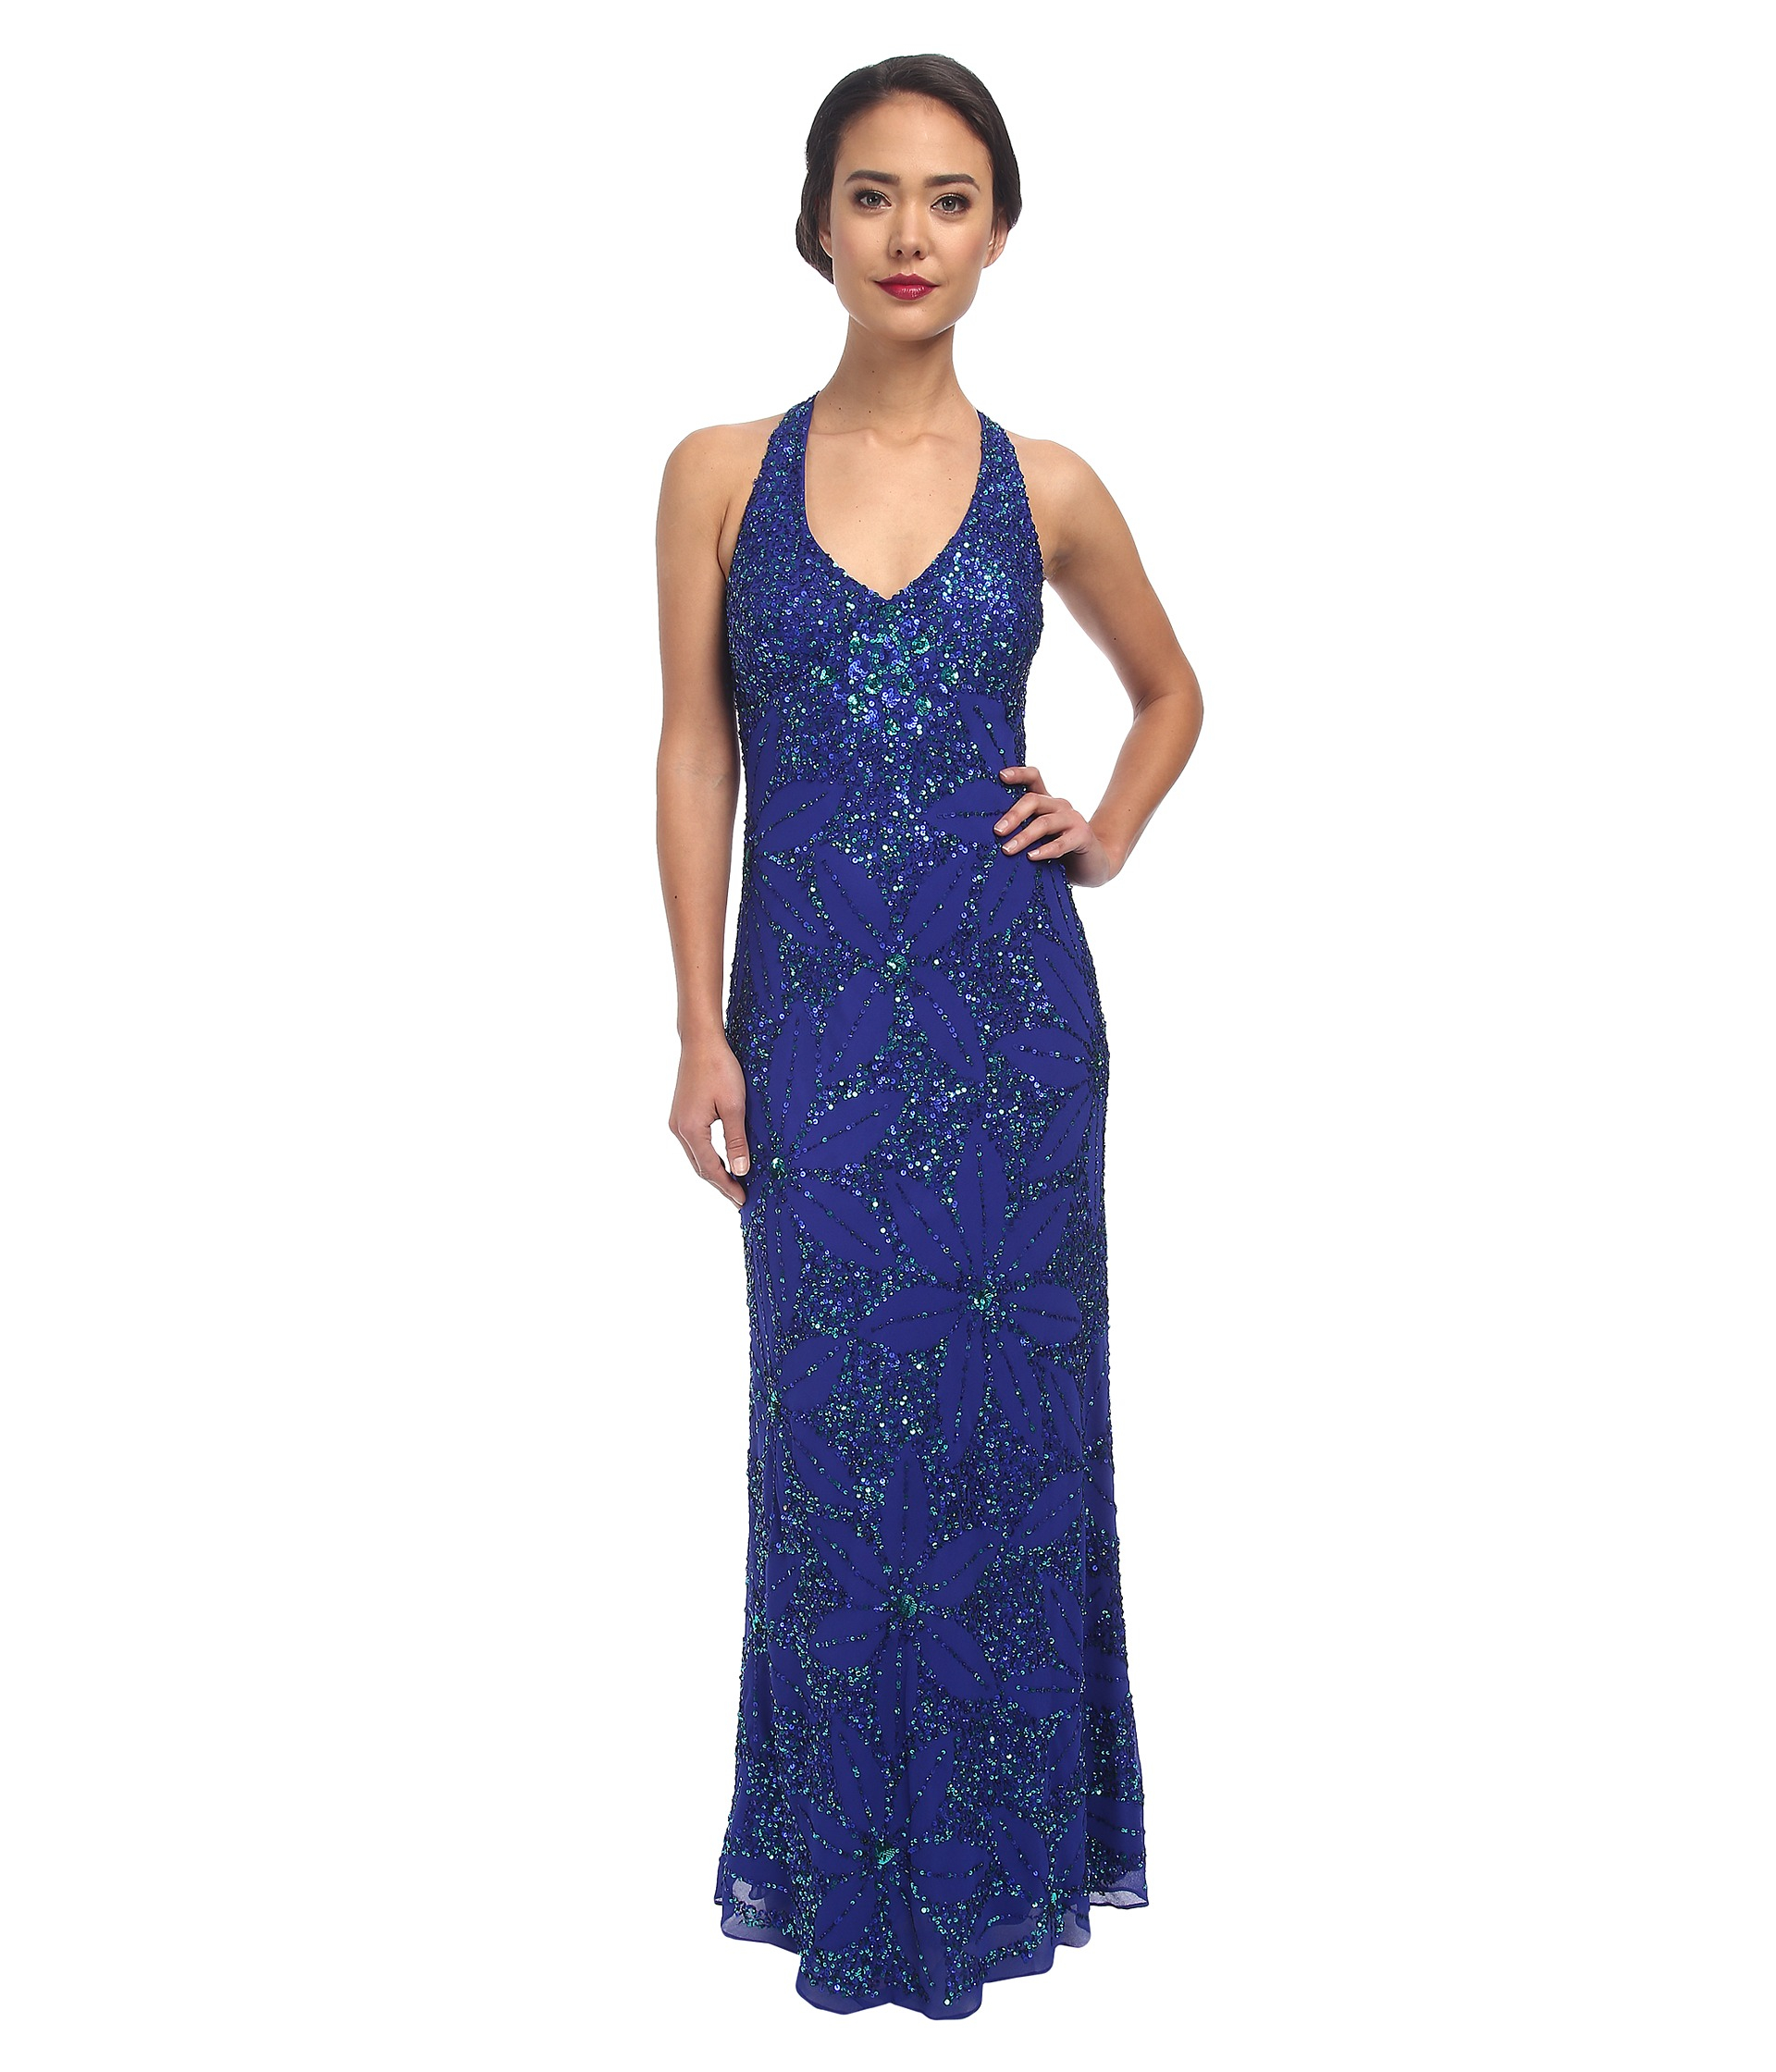 Adrianna papell Dream Girls Bead Prom Gown in Blue  Lyst